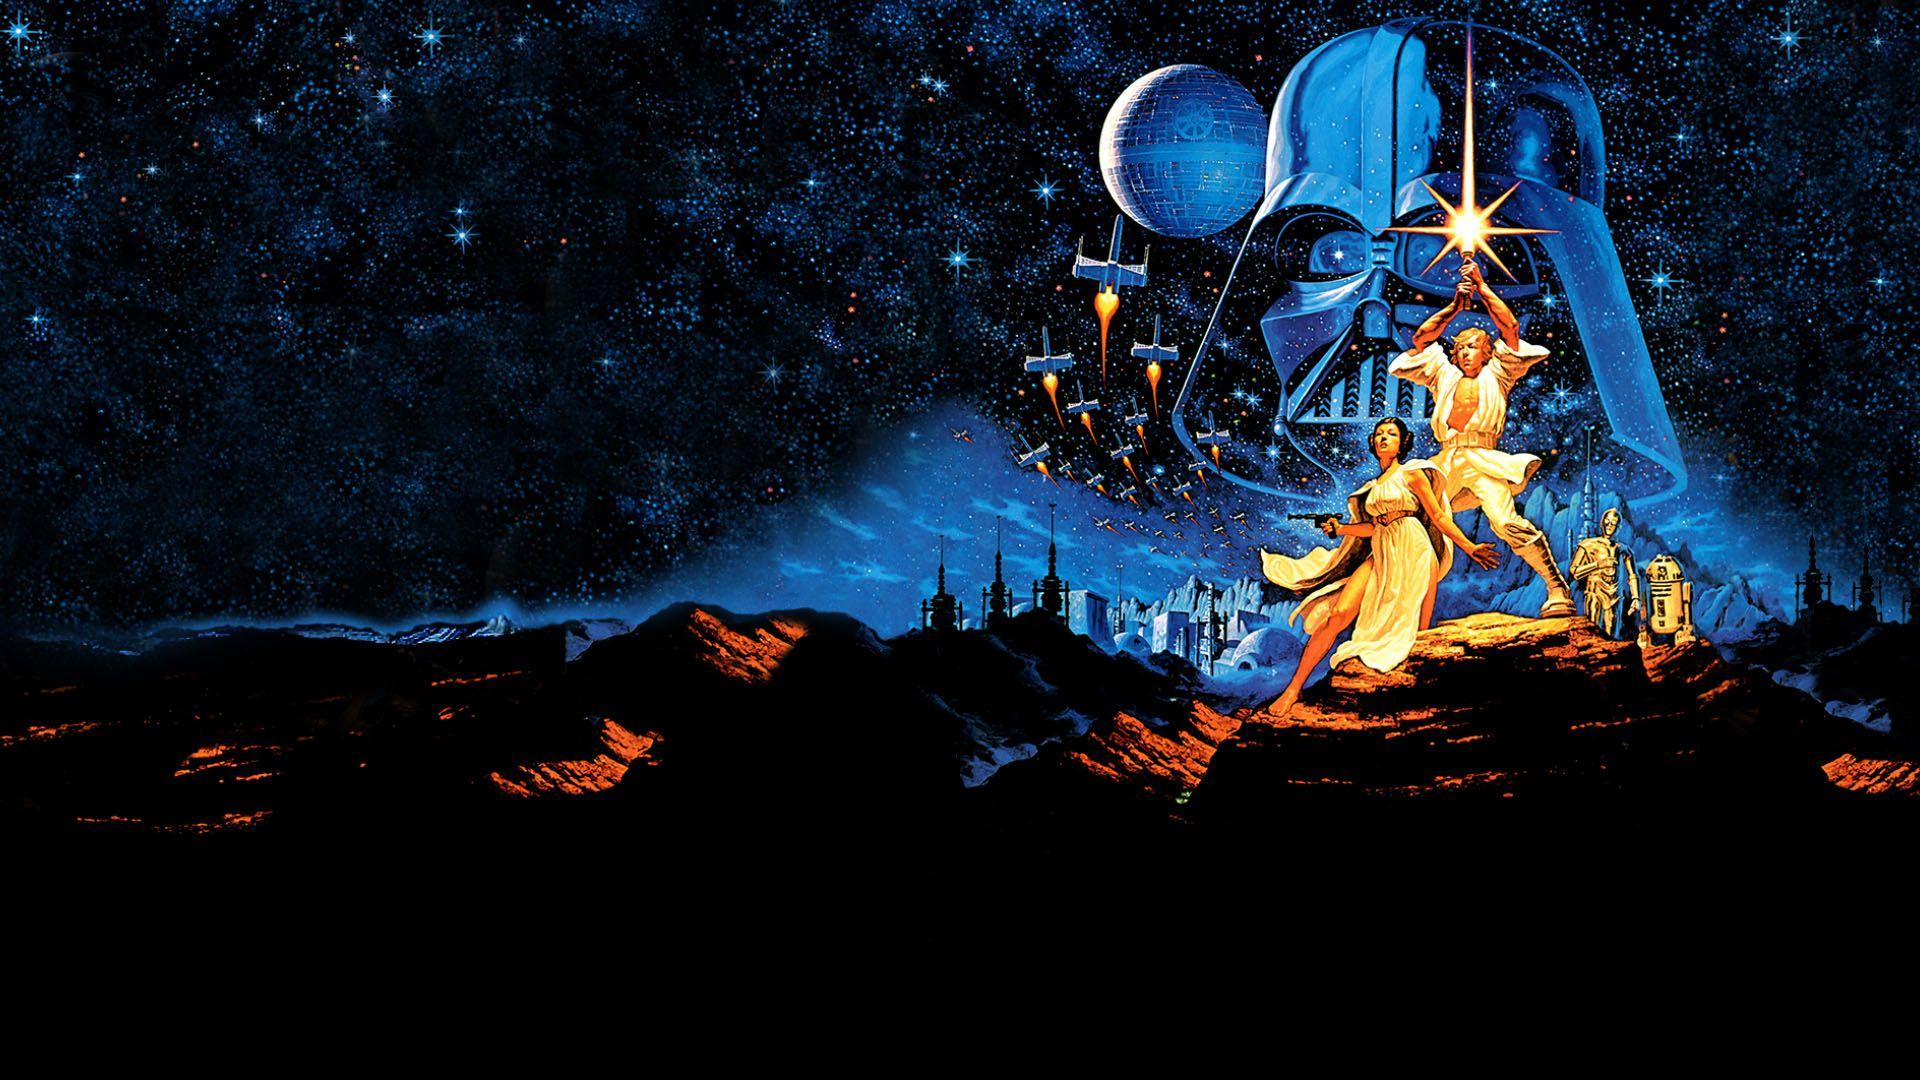 Star Wars Retro 1920x1080 Wallpapers Wallpaper Cave